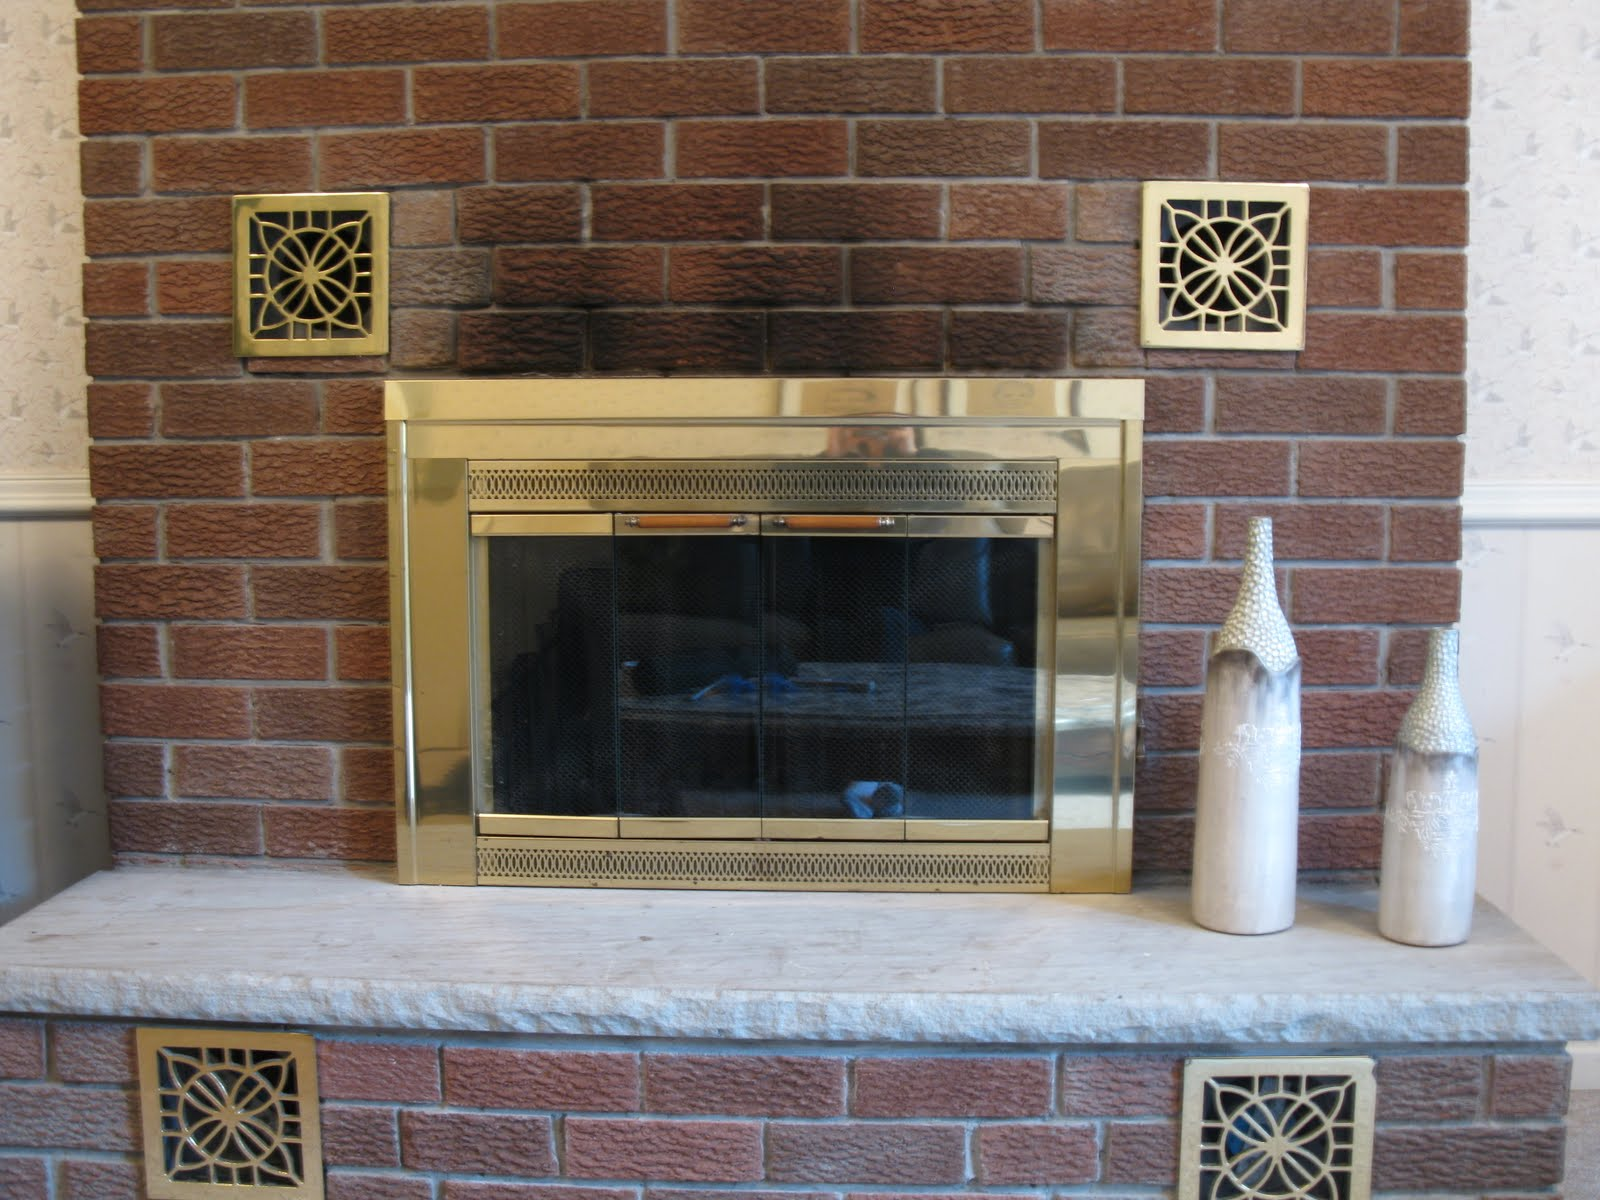 white swan homes and gardens how to clean soot from fireplace brick rh whiteswanproperties blogspot com fireplace soot cleaner fireplace soot cleaning